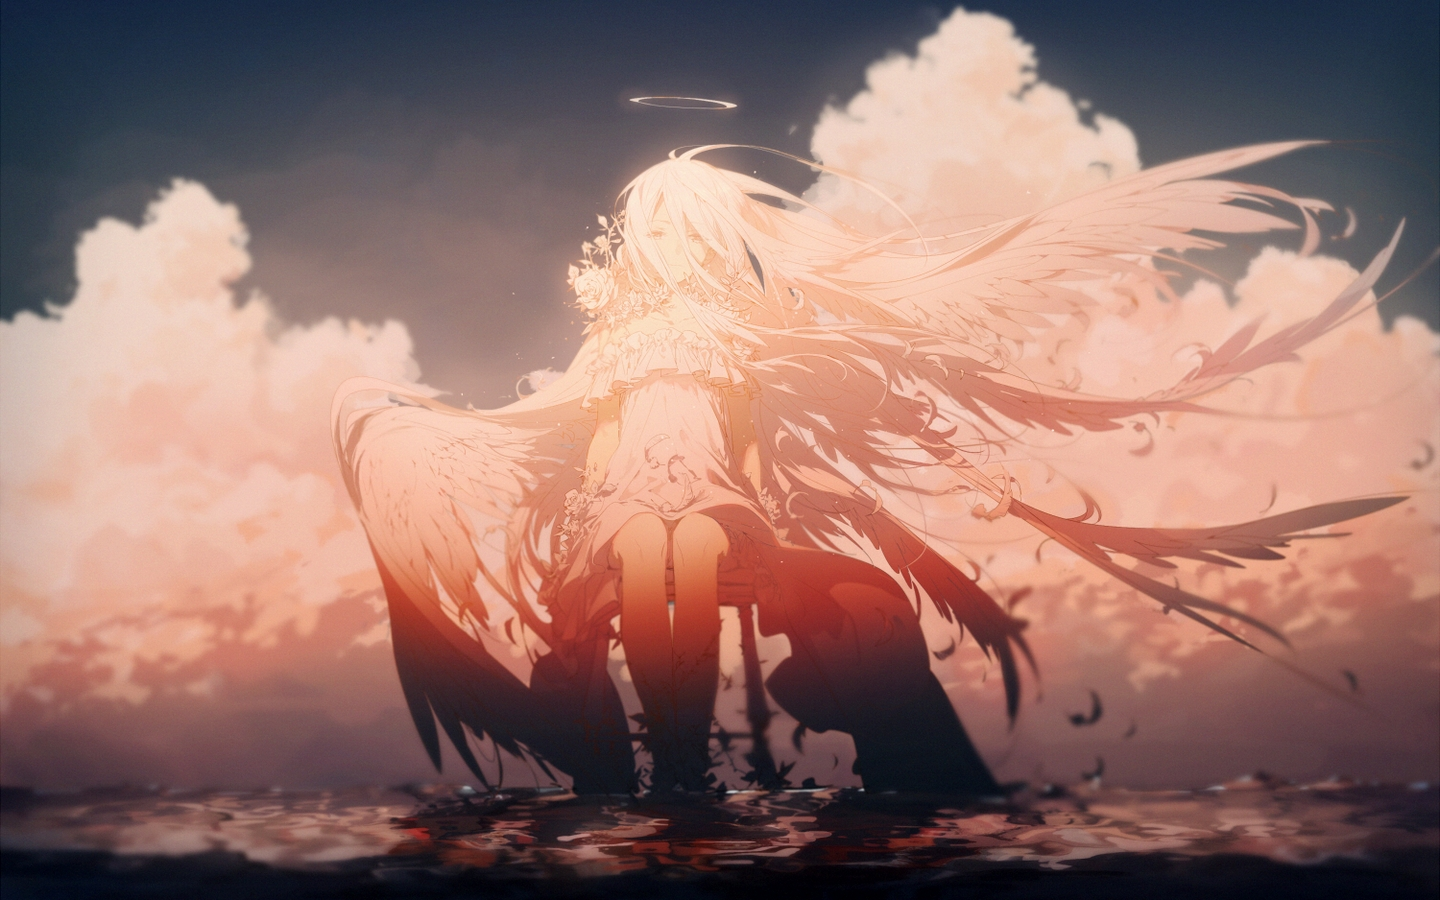 Anime 1440x900 wings angel clouds